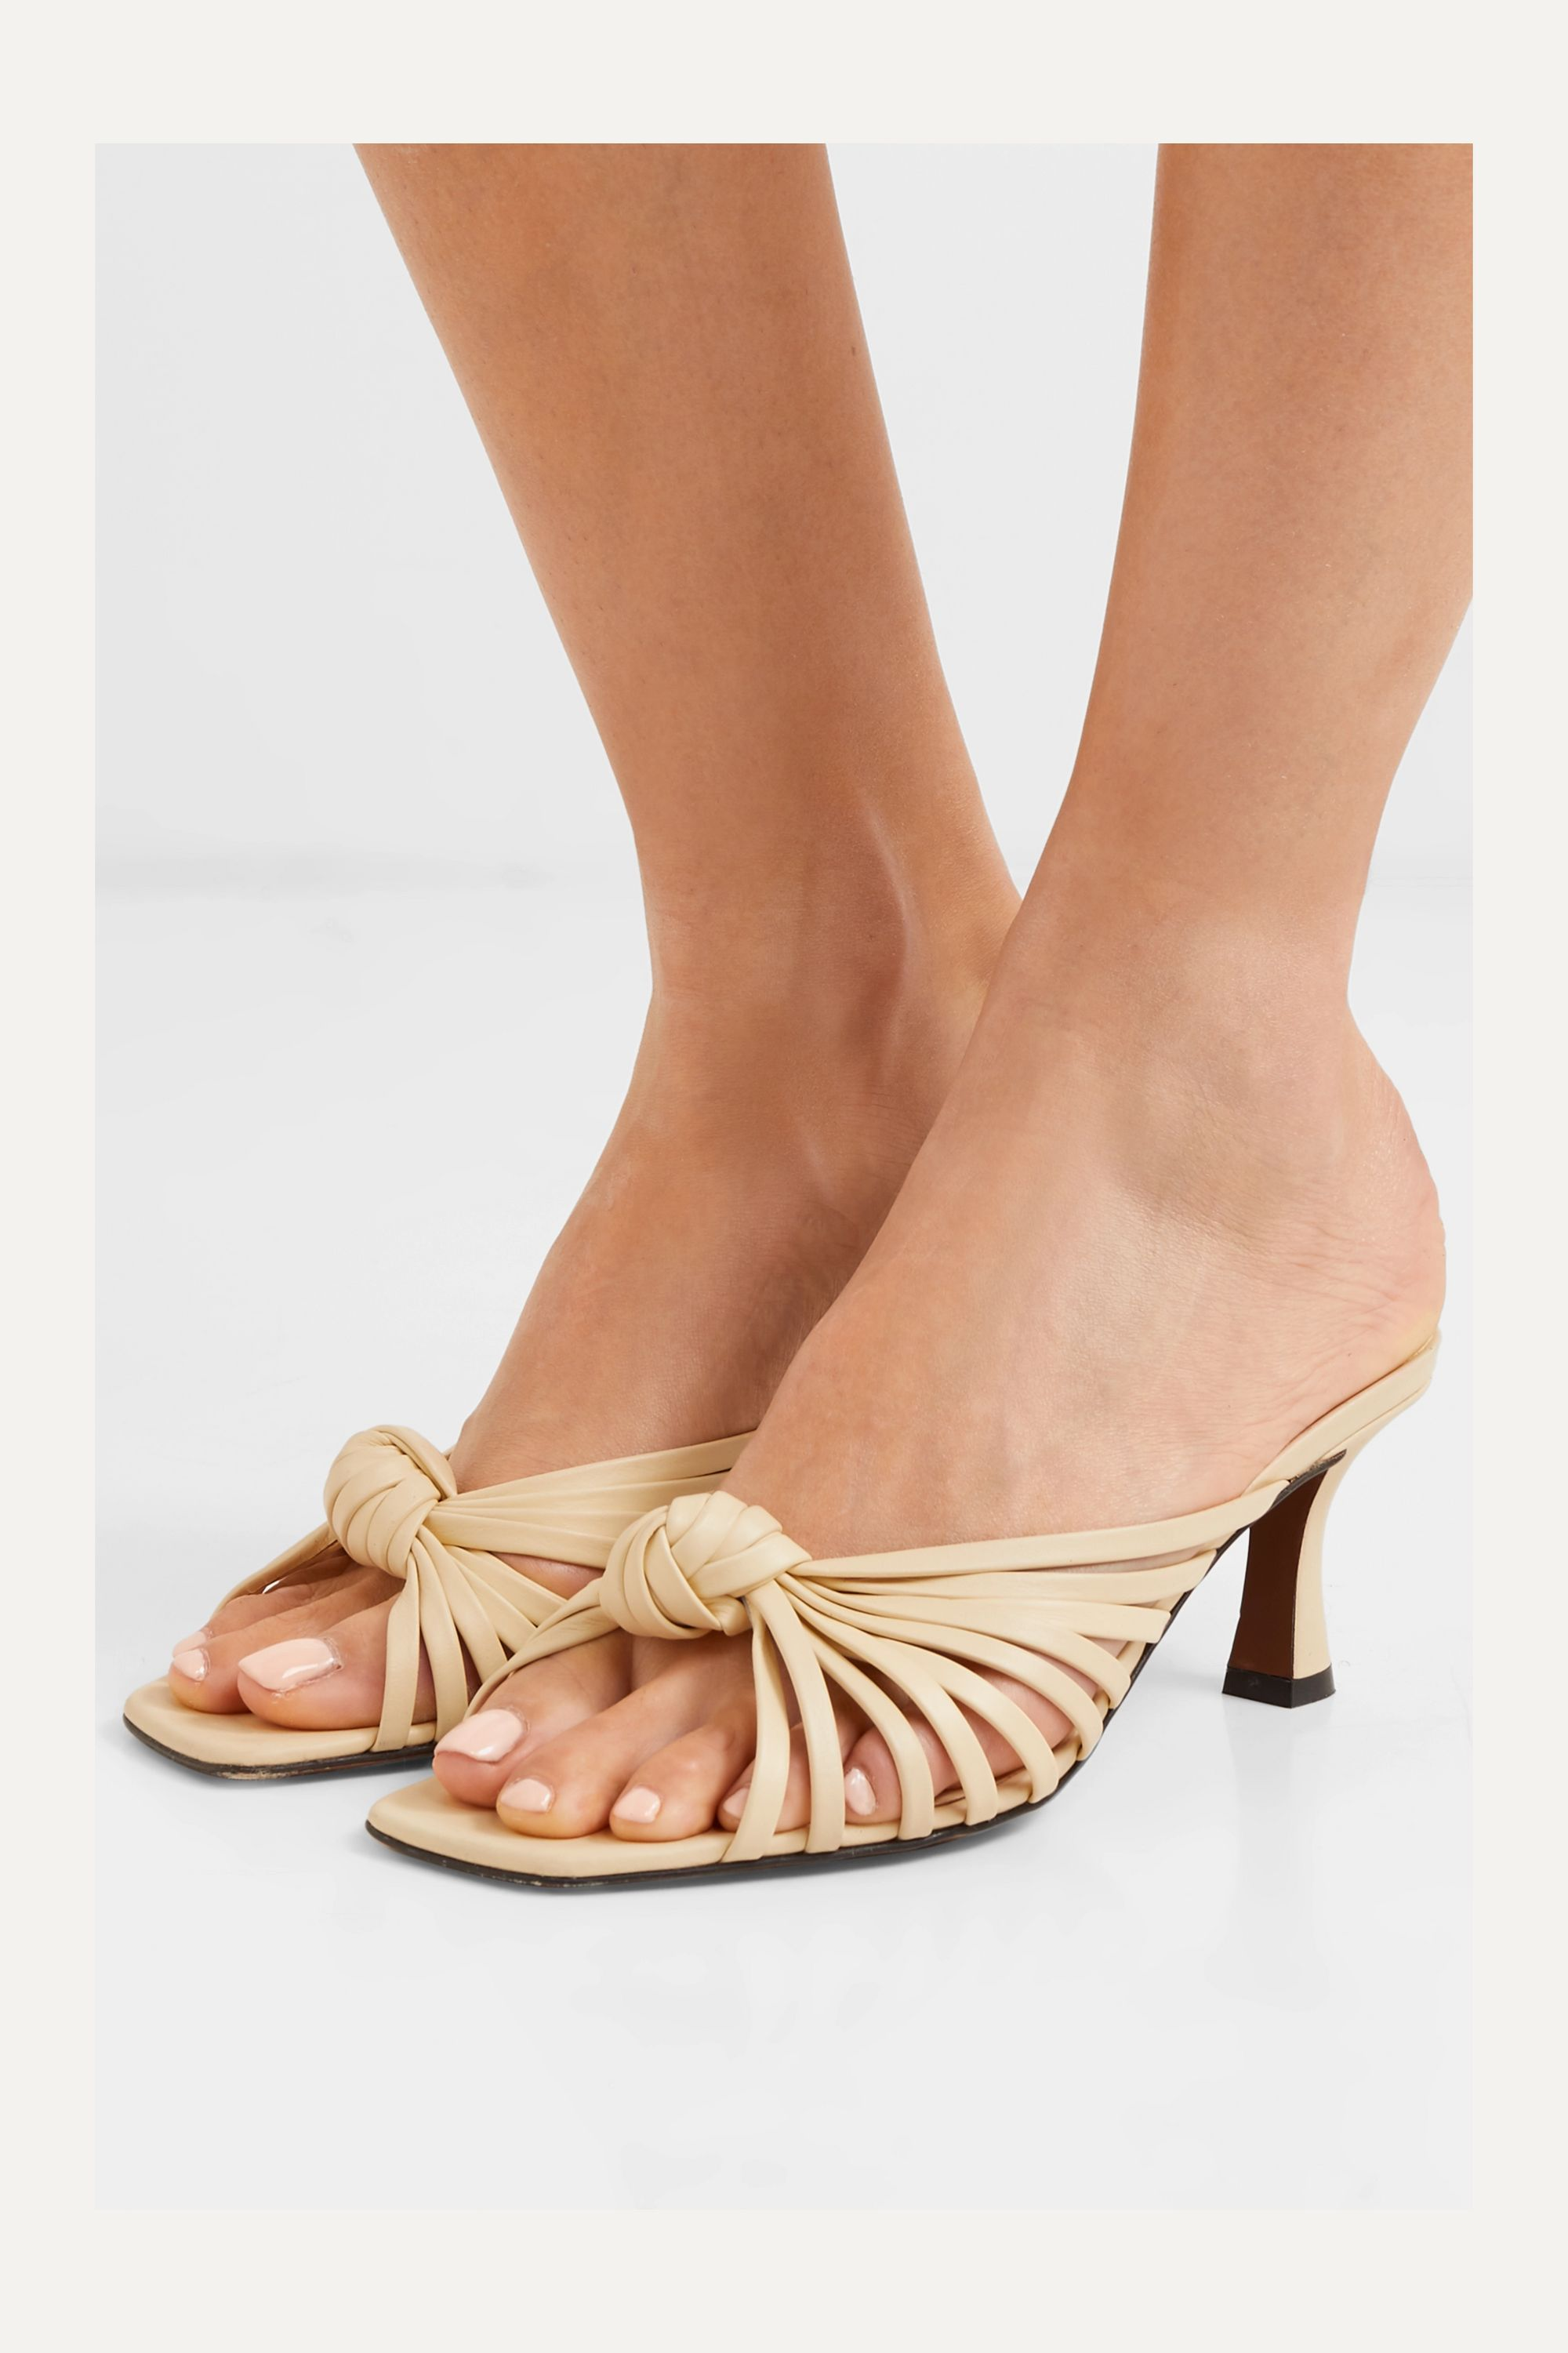 Neous Lottis knotted leather sandals